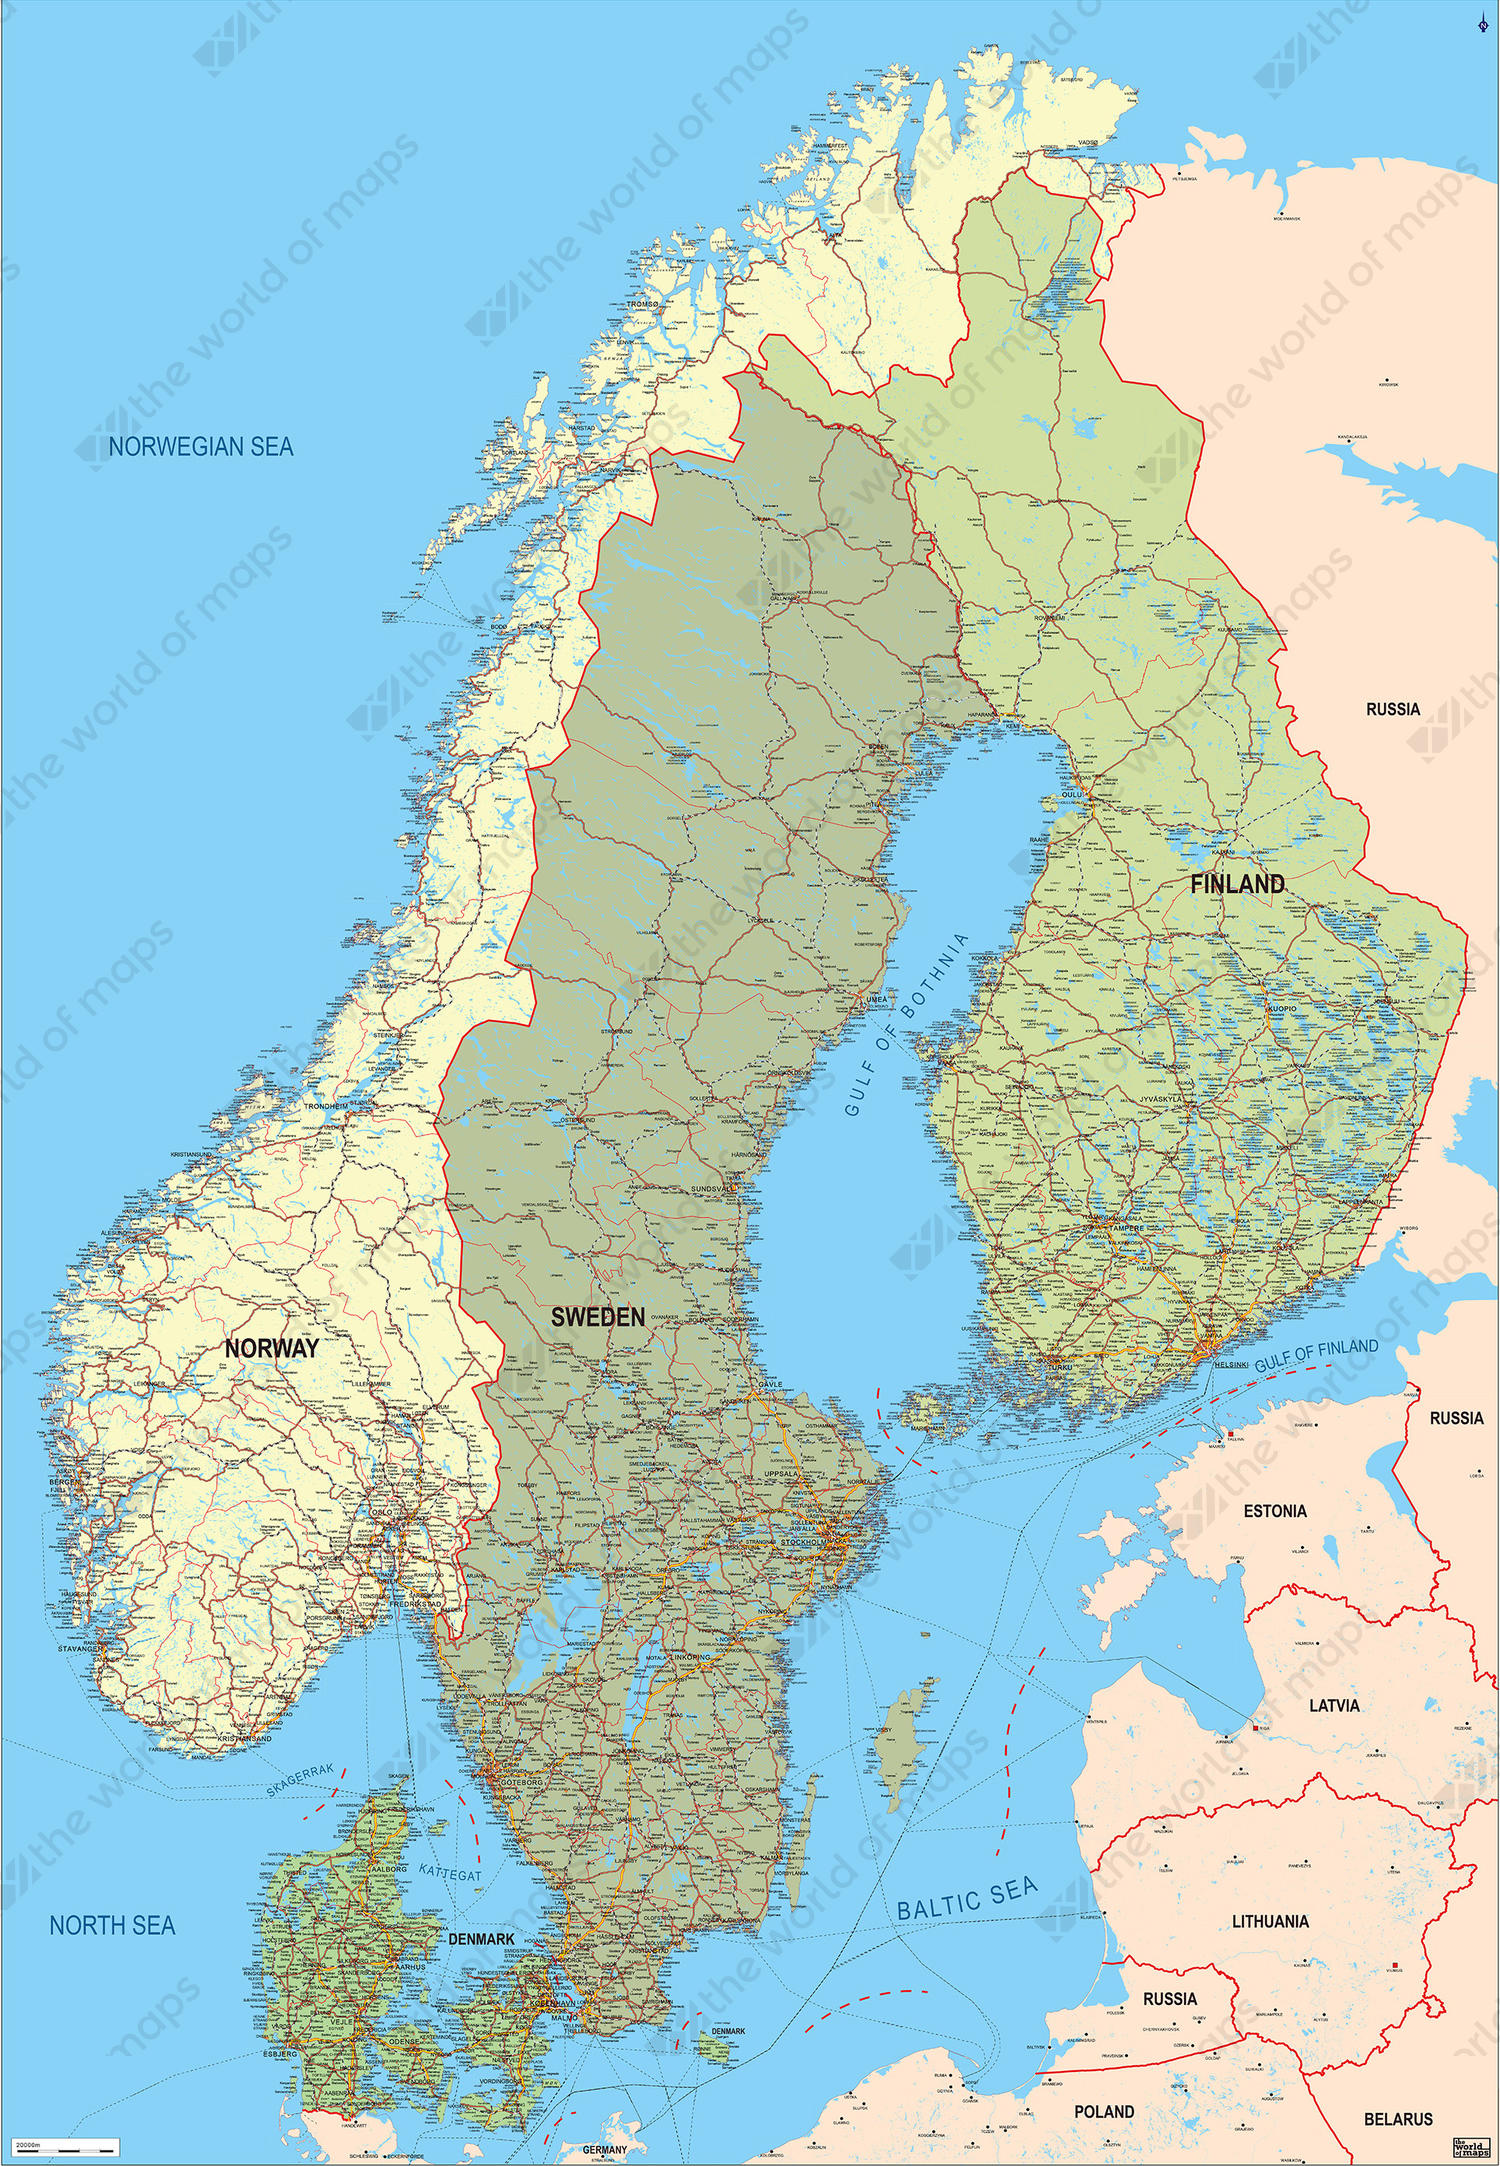 Digital Map Scandinavia Political 120 | The World of Maps.com